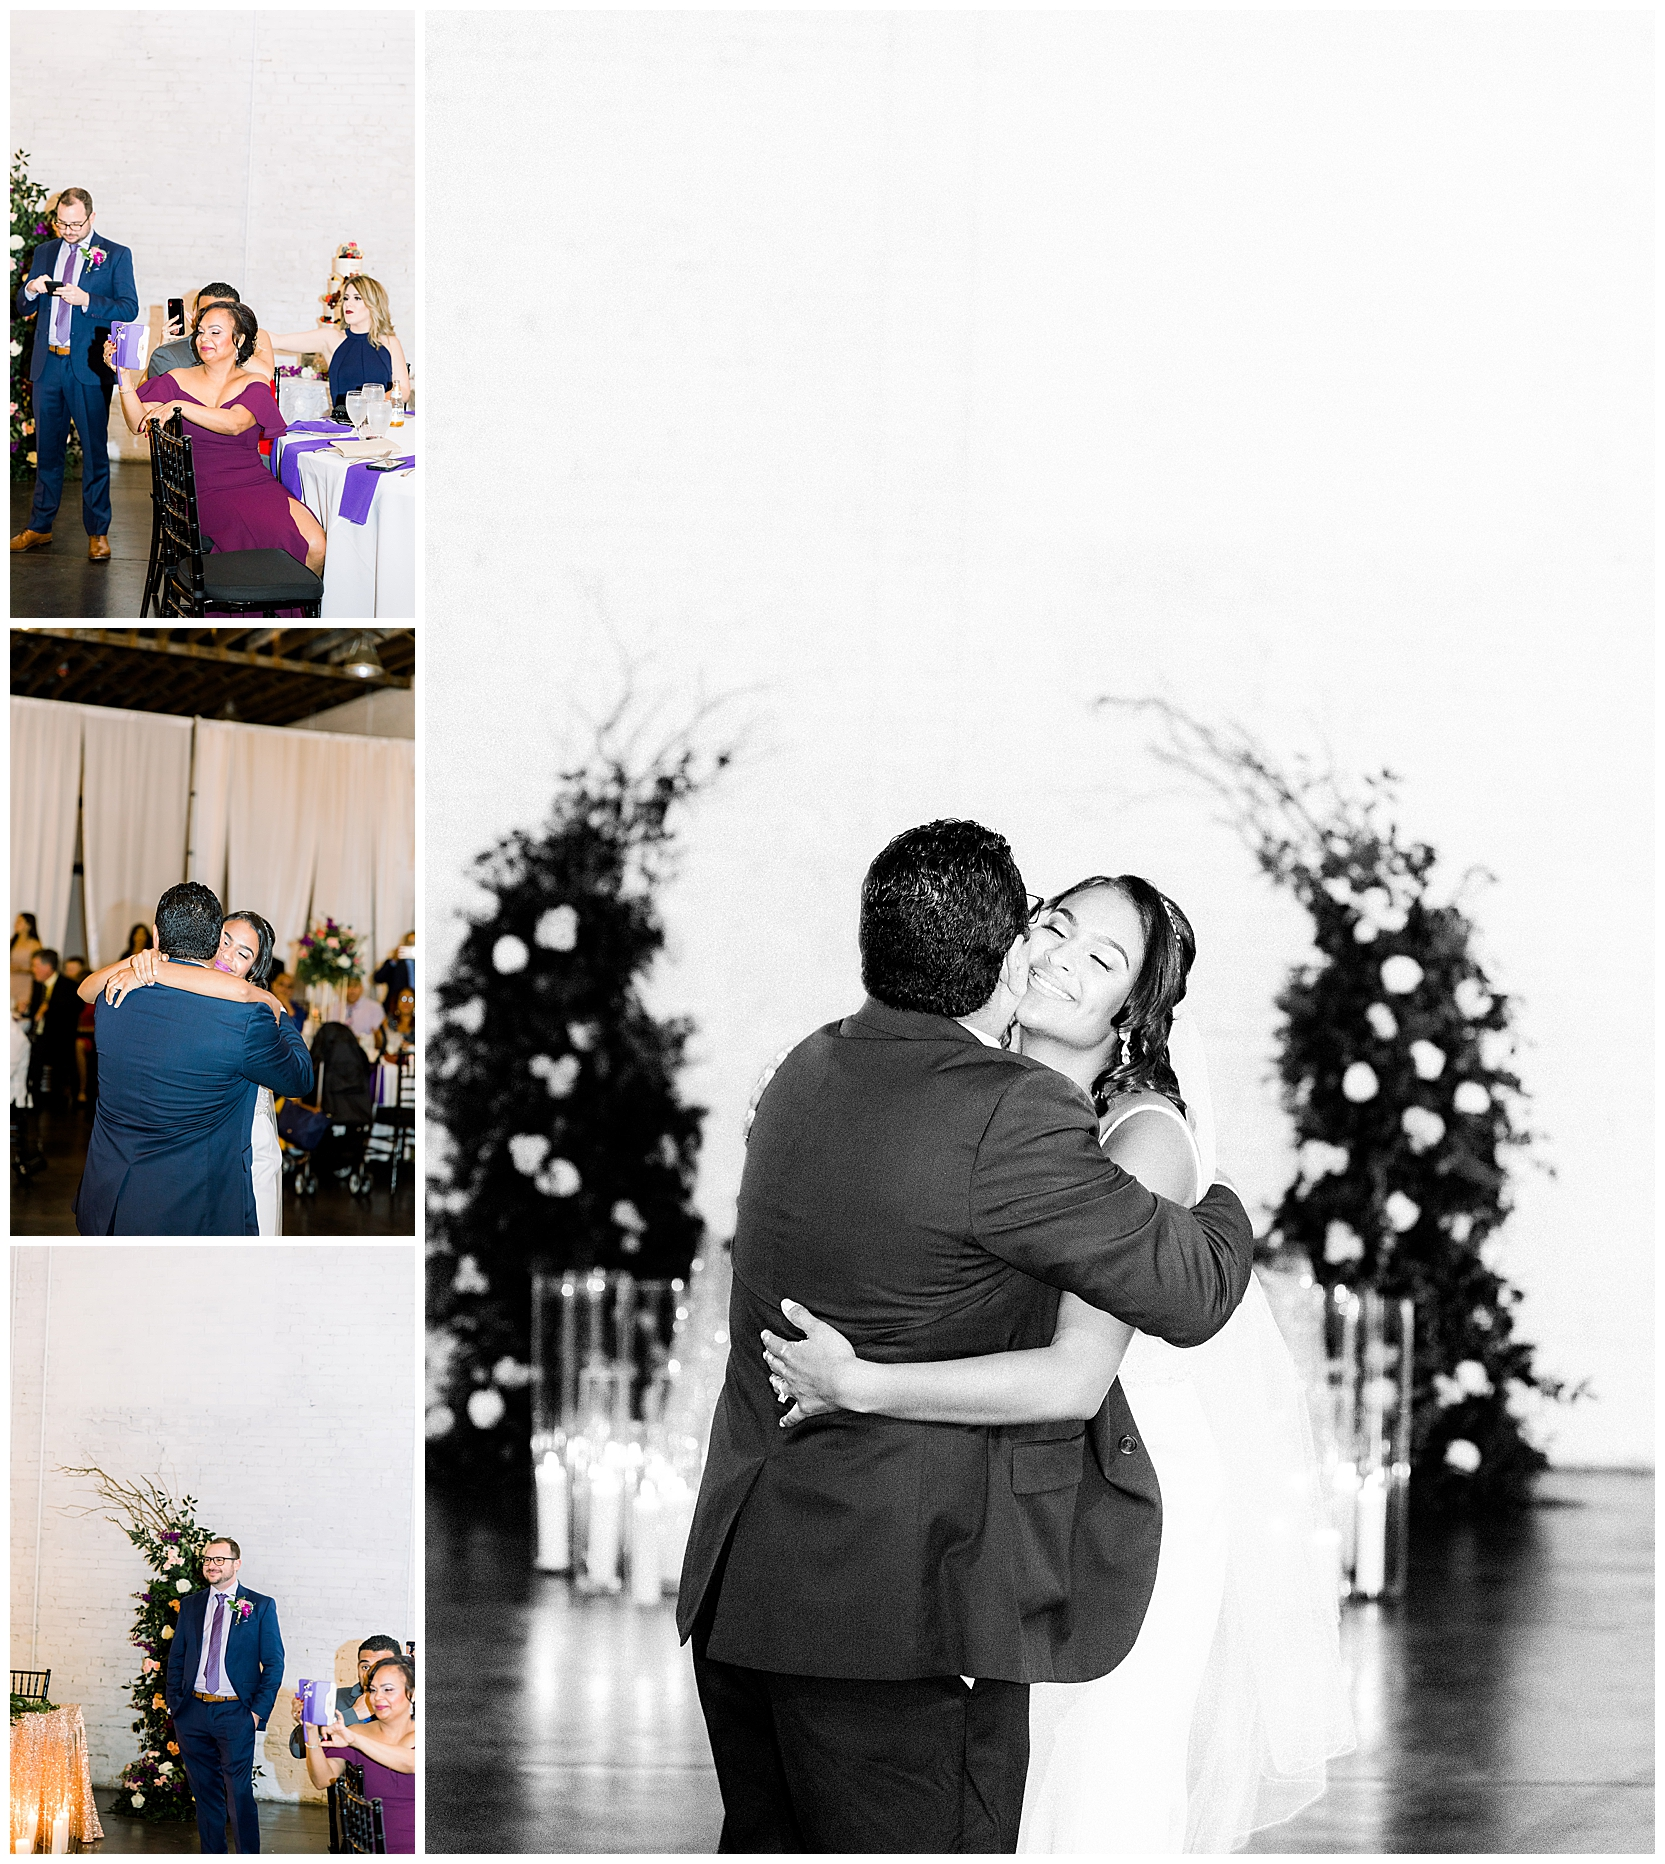 jessicafredericks_lakeland_tampa_wedding_purple_crazy hour_0074.jpg